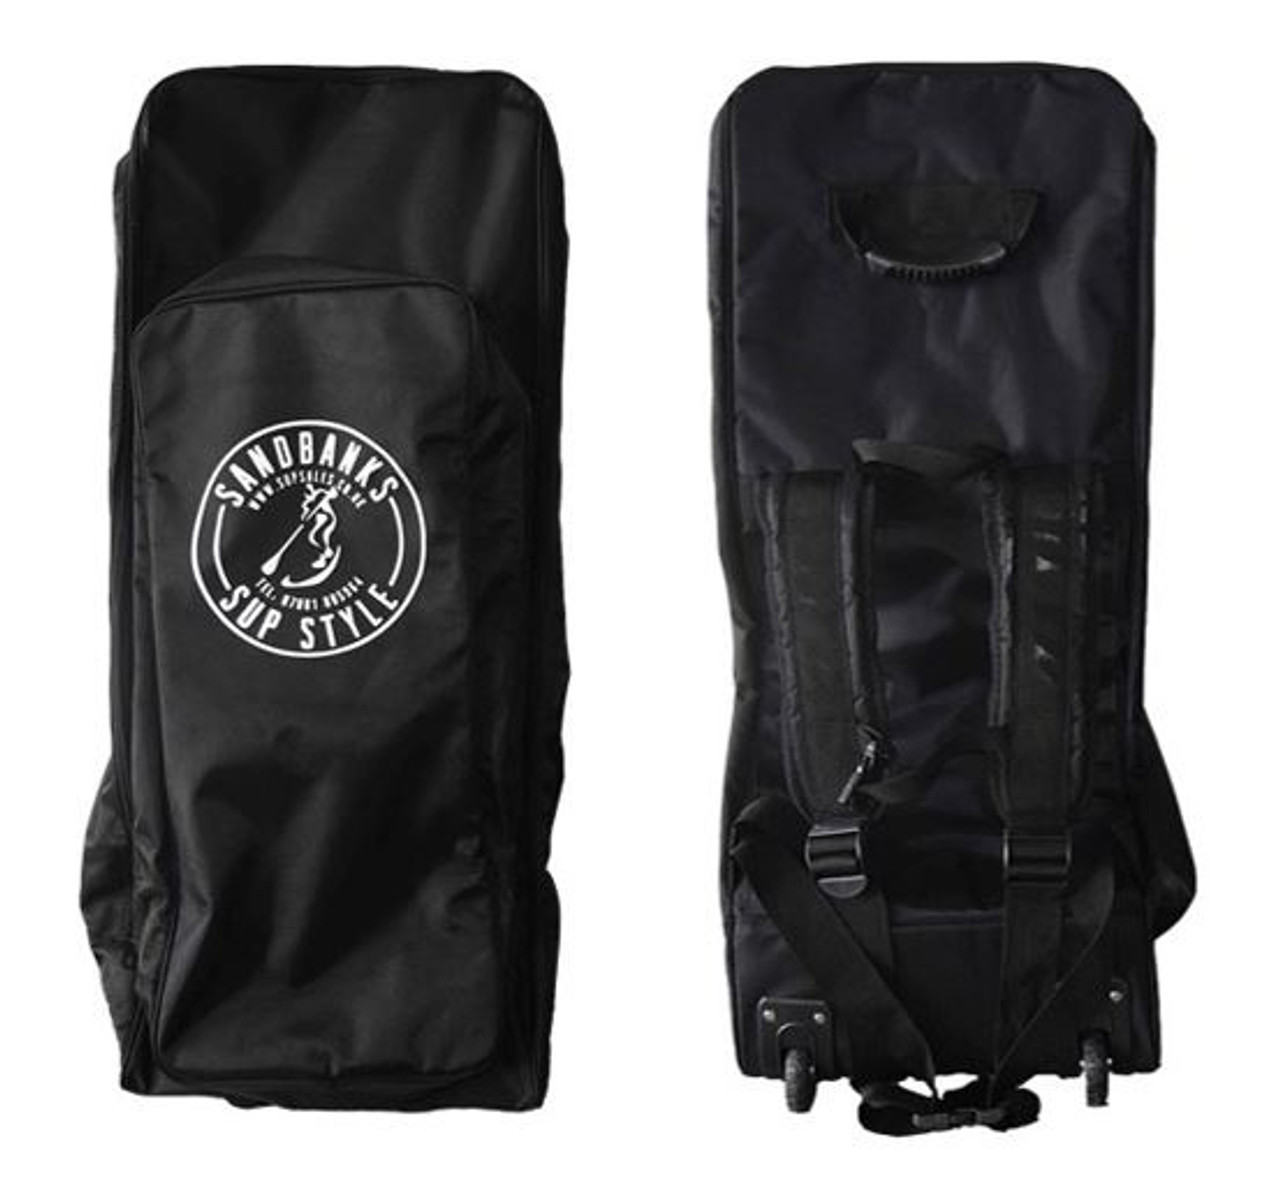 Wheeled back pack storage bag for inflatable paddle board